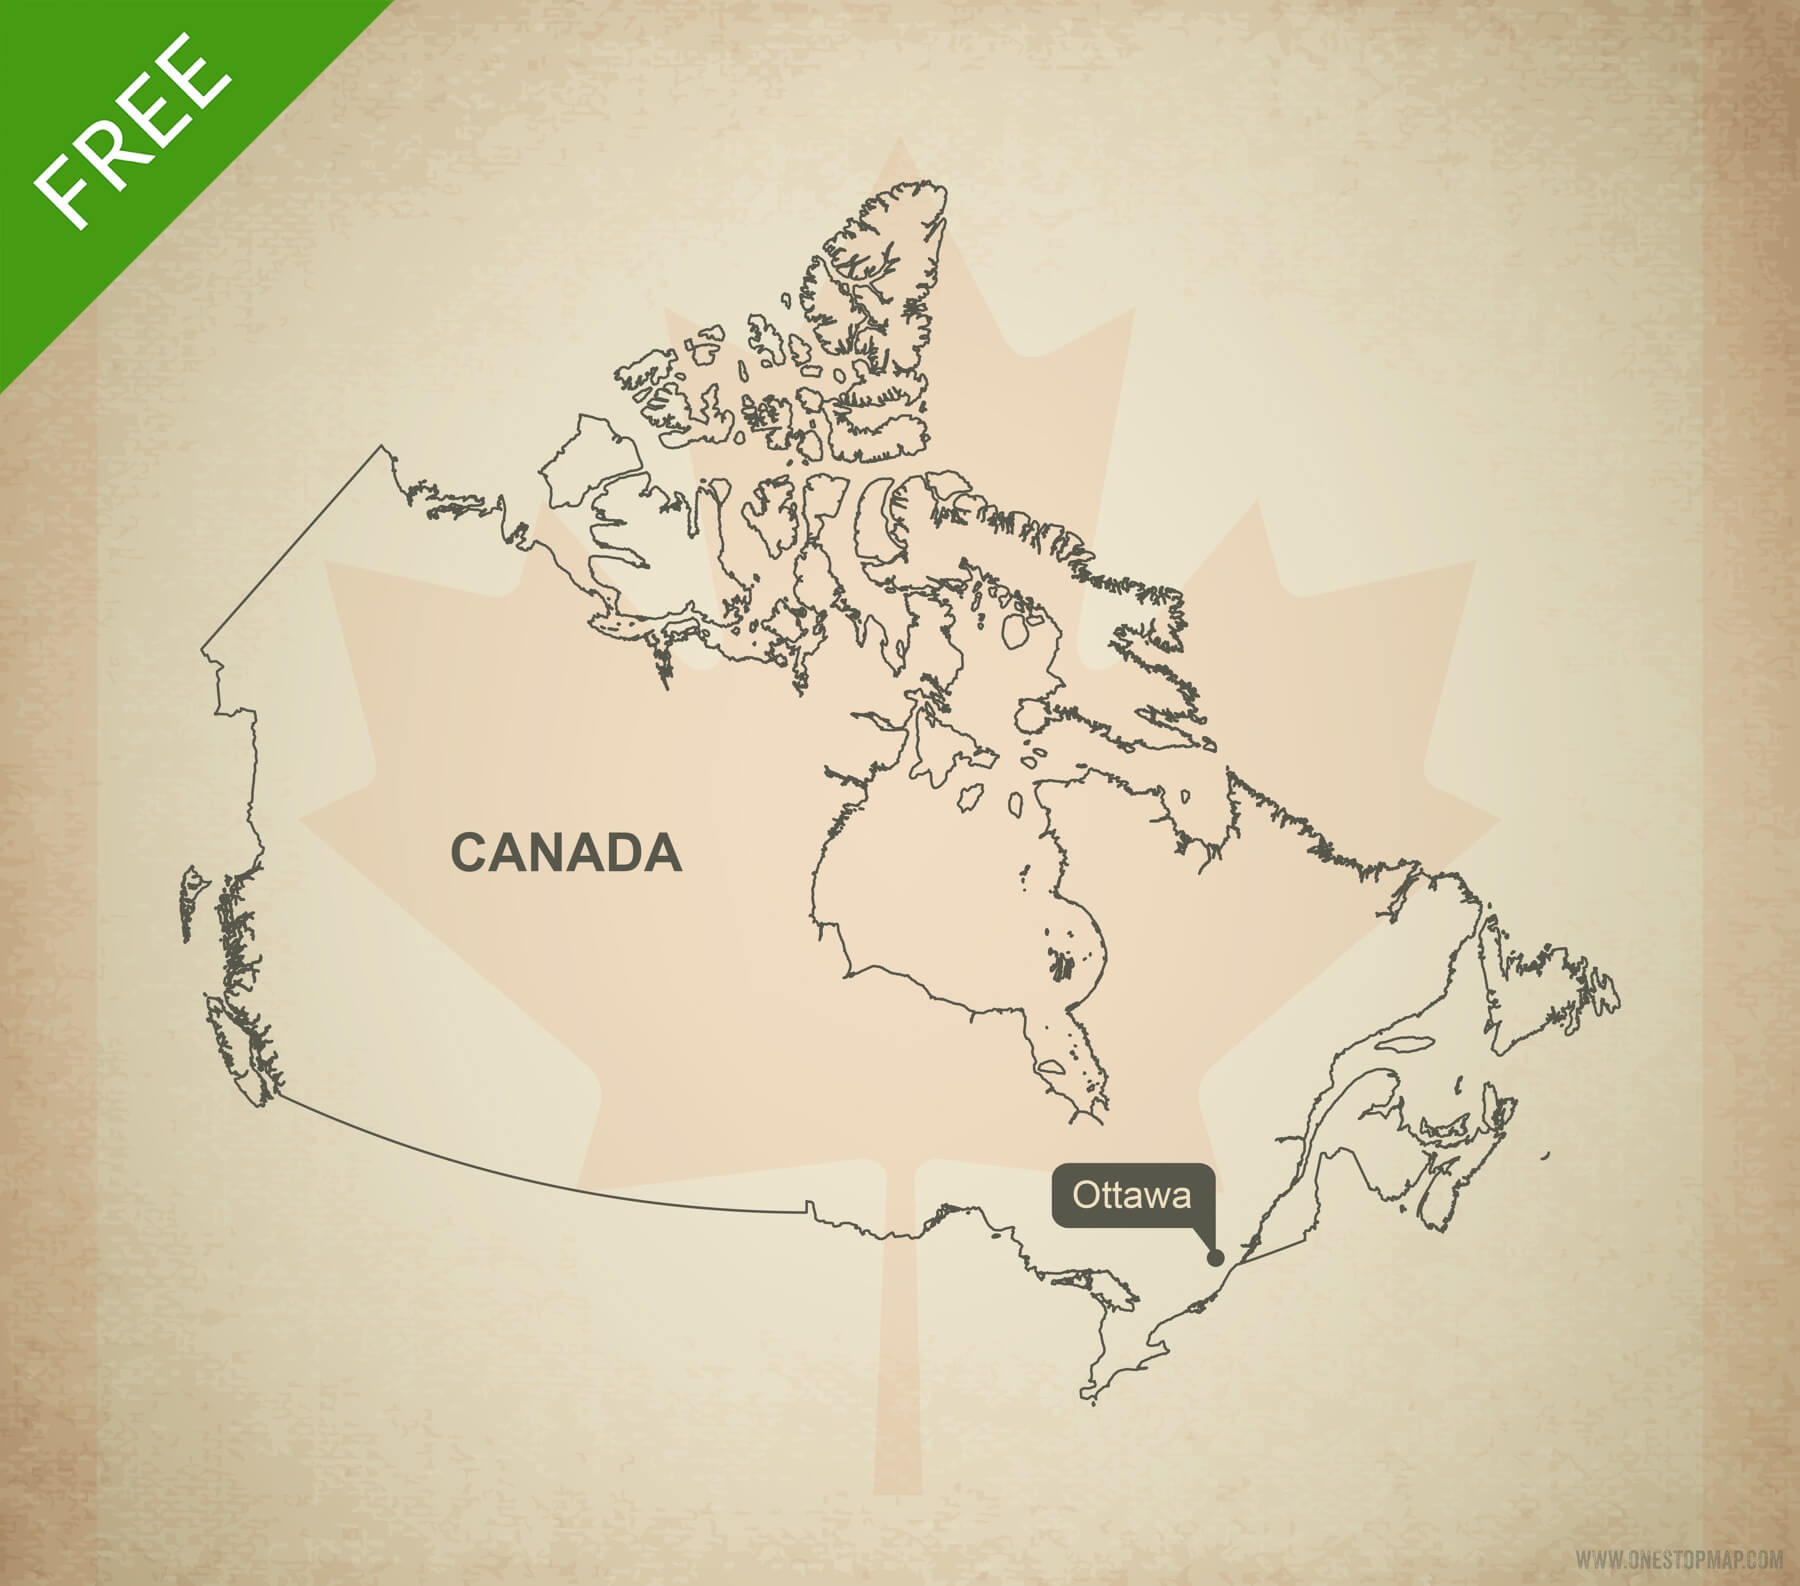 1800x1586 Free Vector Map Of Canada Outline One Stop Map